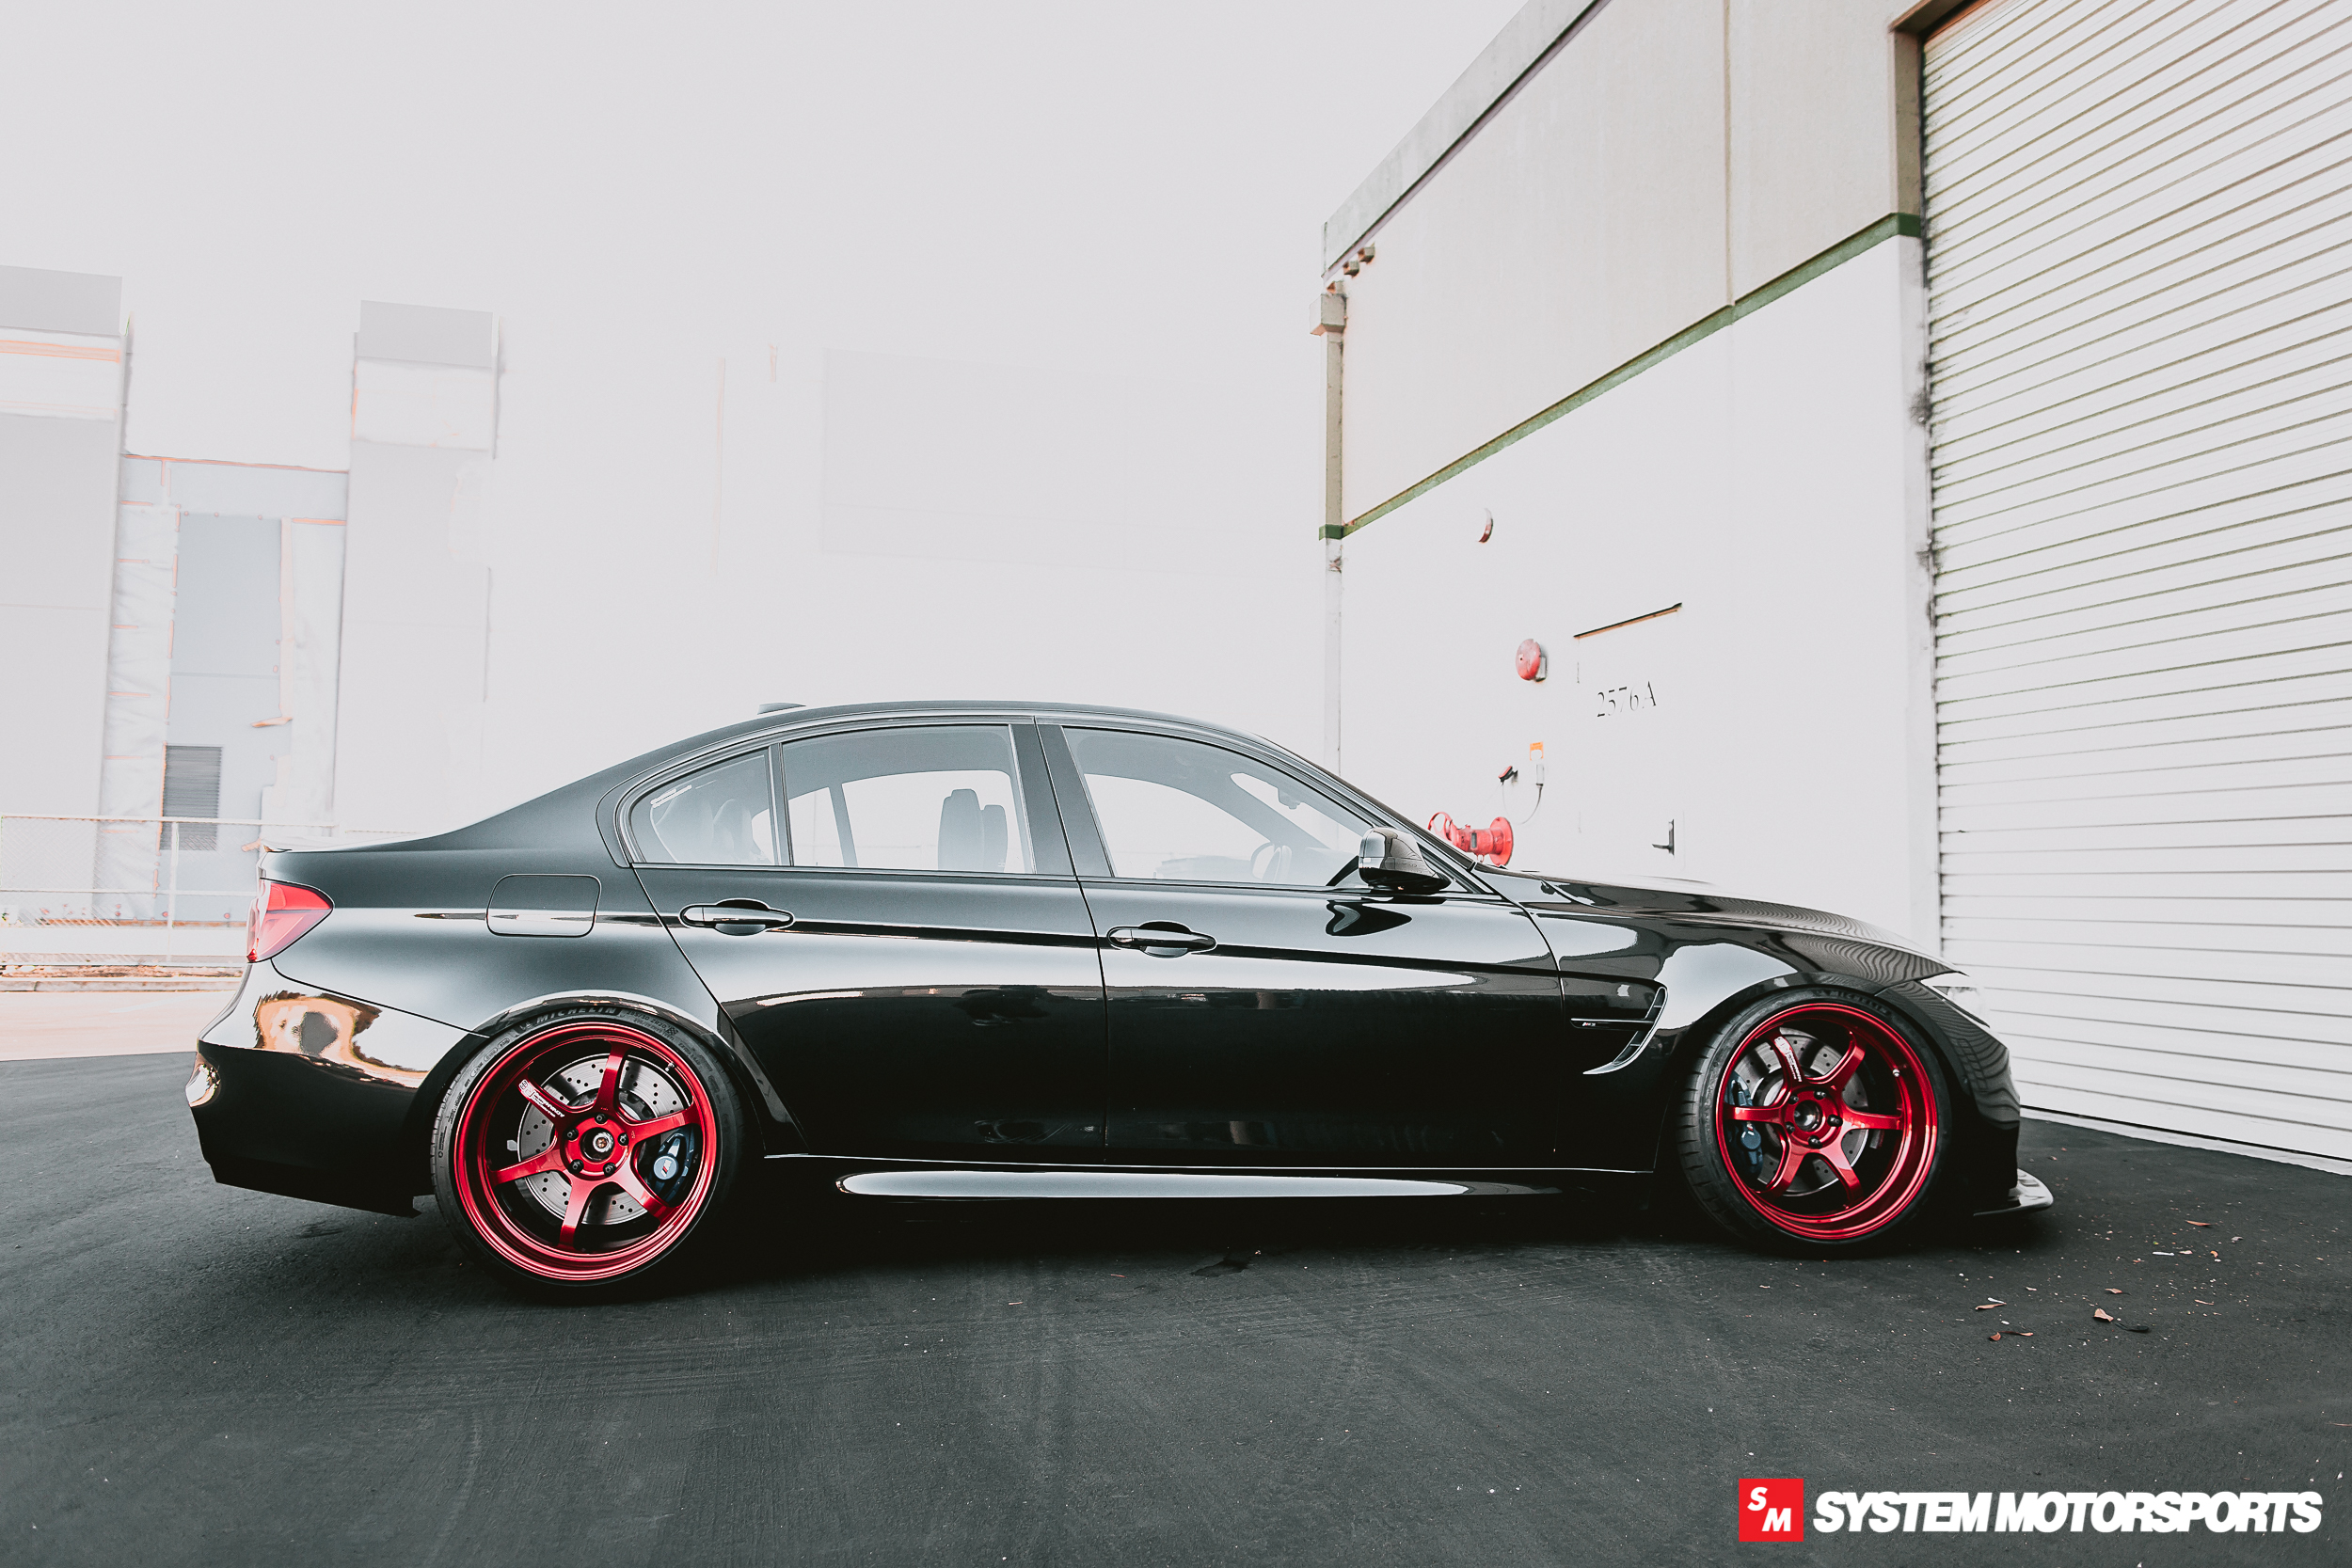 Forged Yokohama Advan R6 in Racing Candy Red, mounted up on our System Motorsports F80 M3!